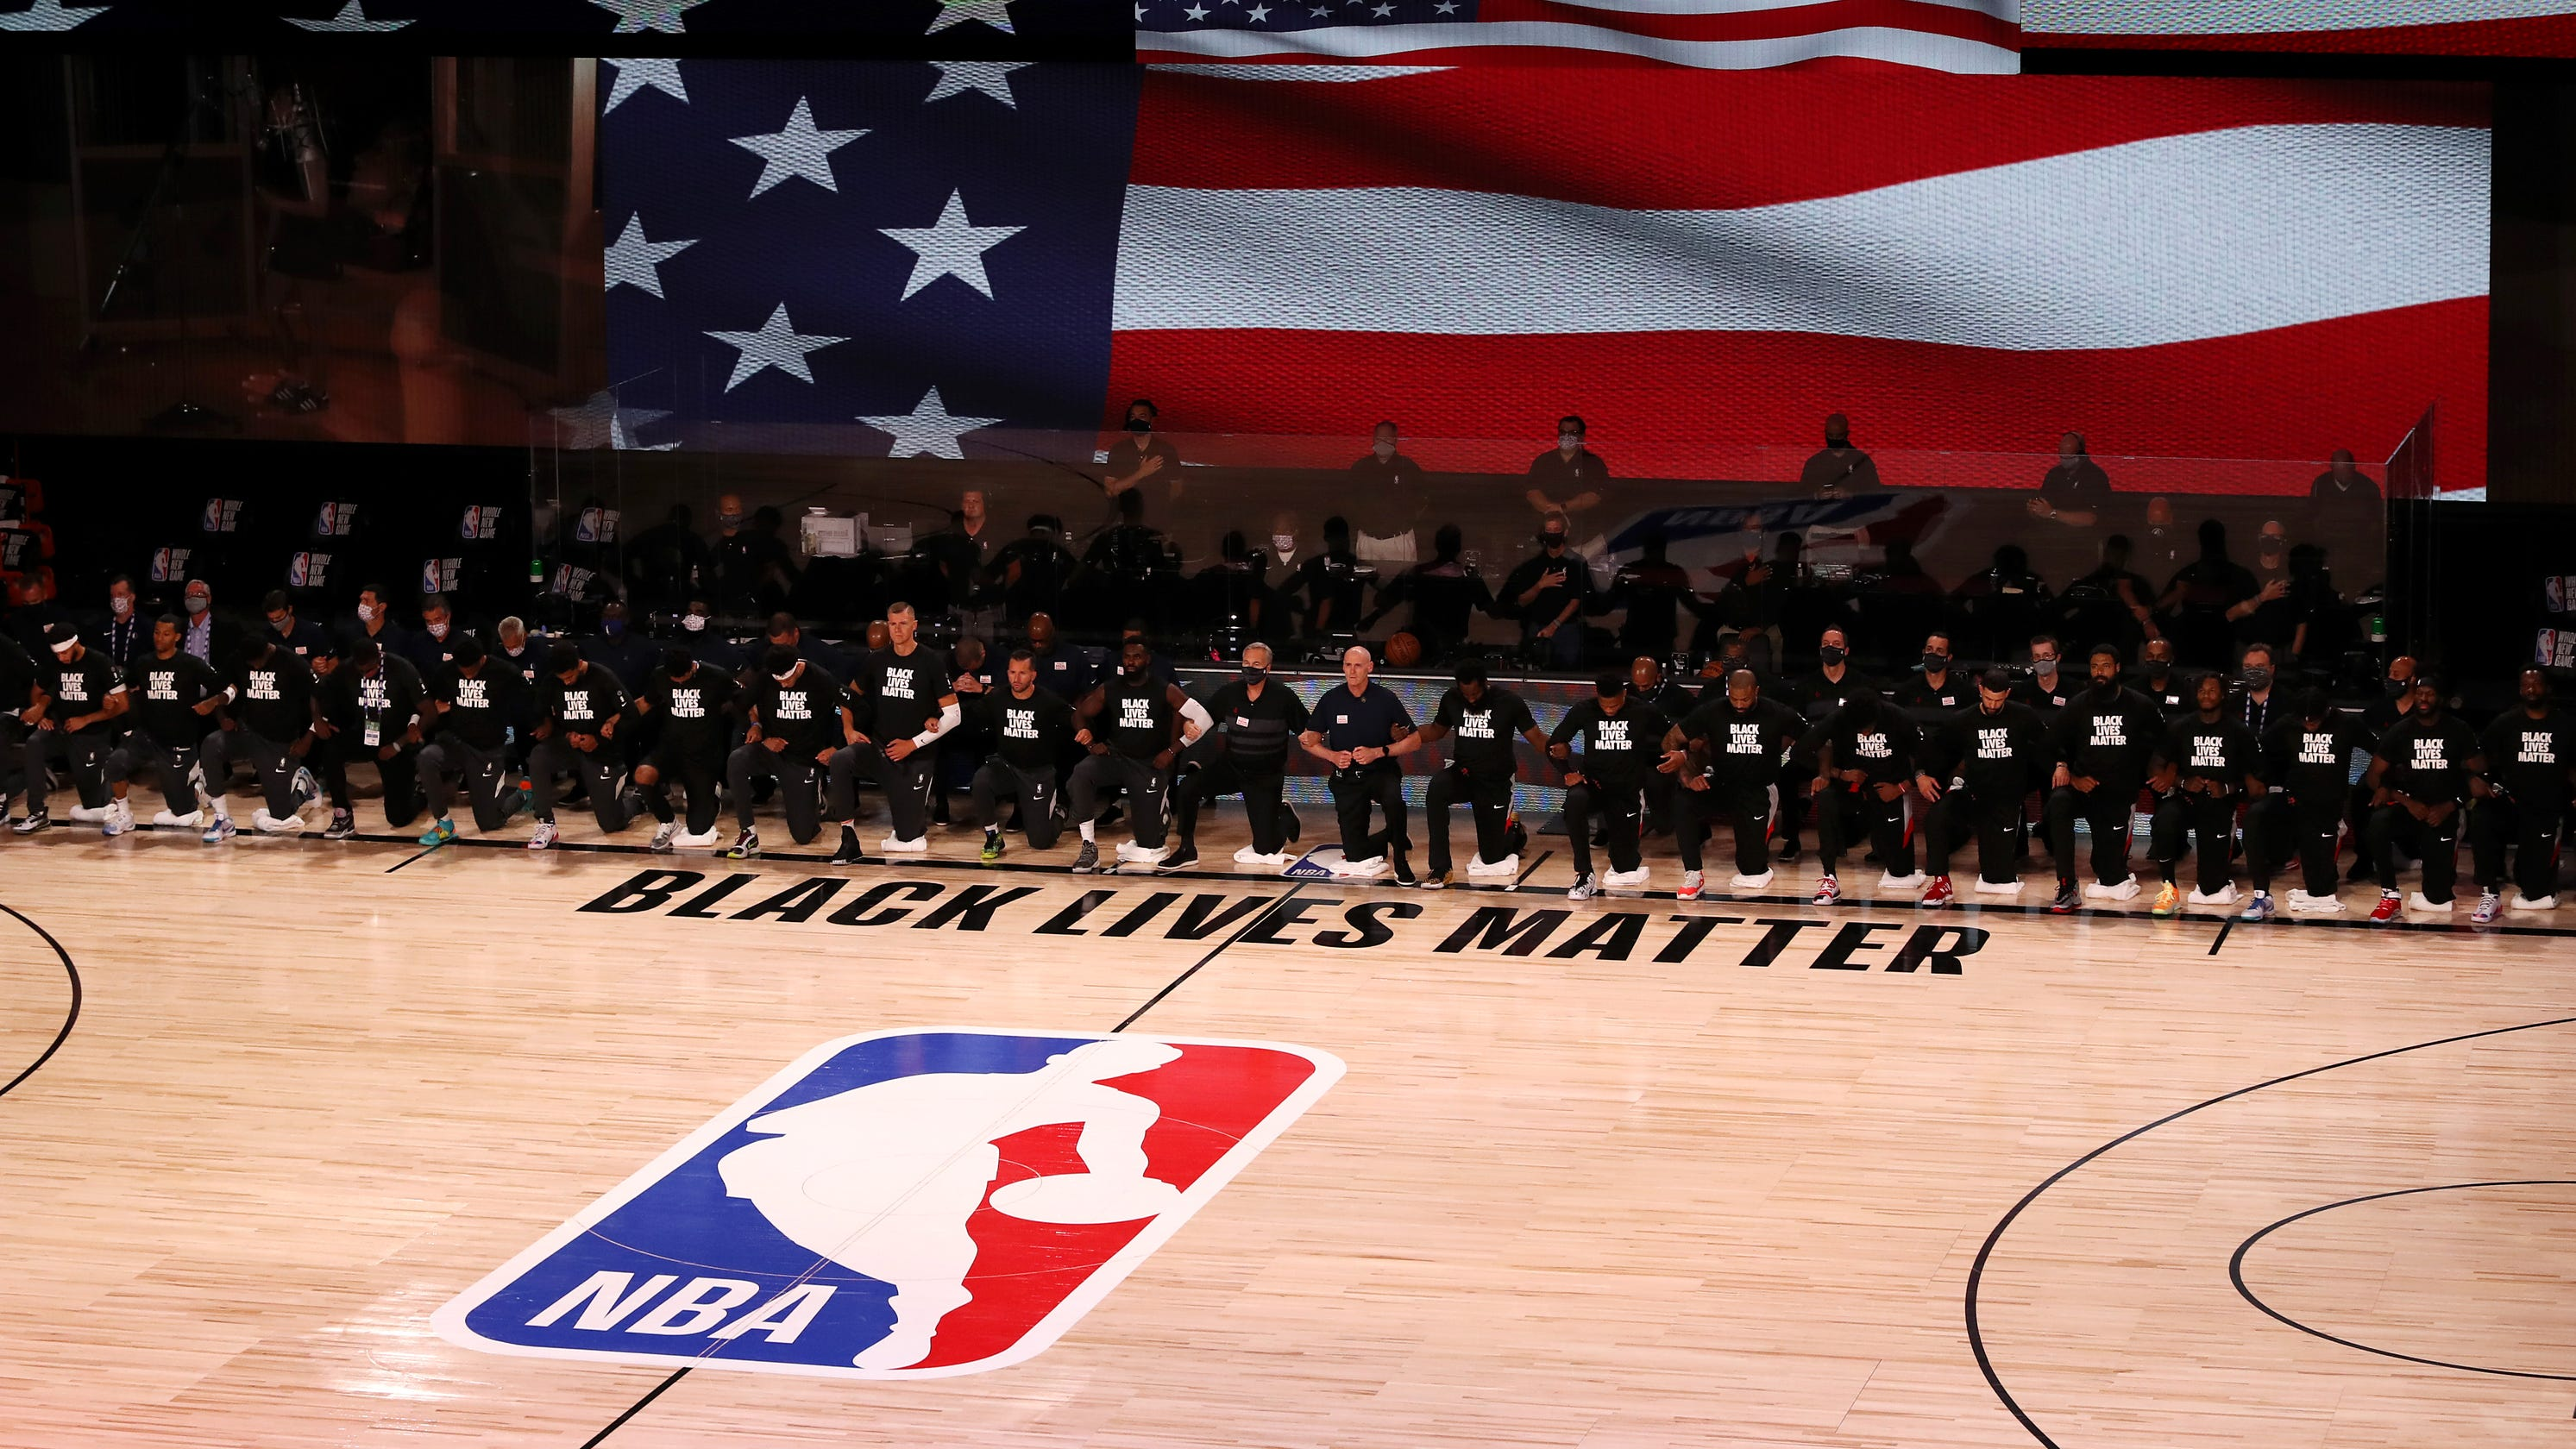 NBA live updates: What does Day 3 have in store for NBA fans?